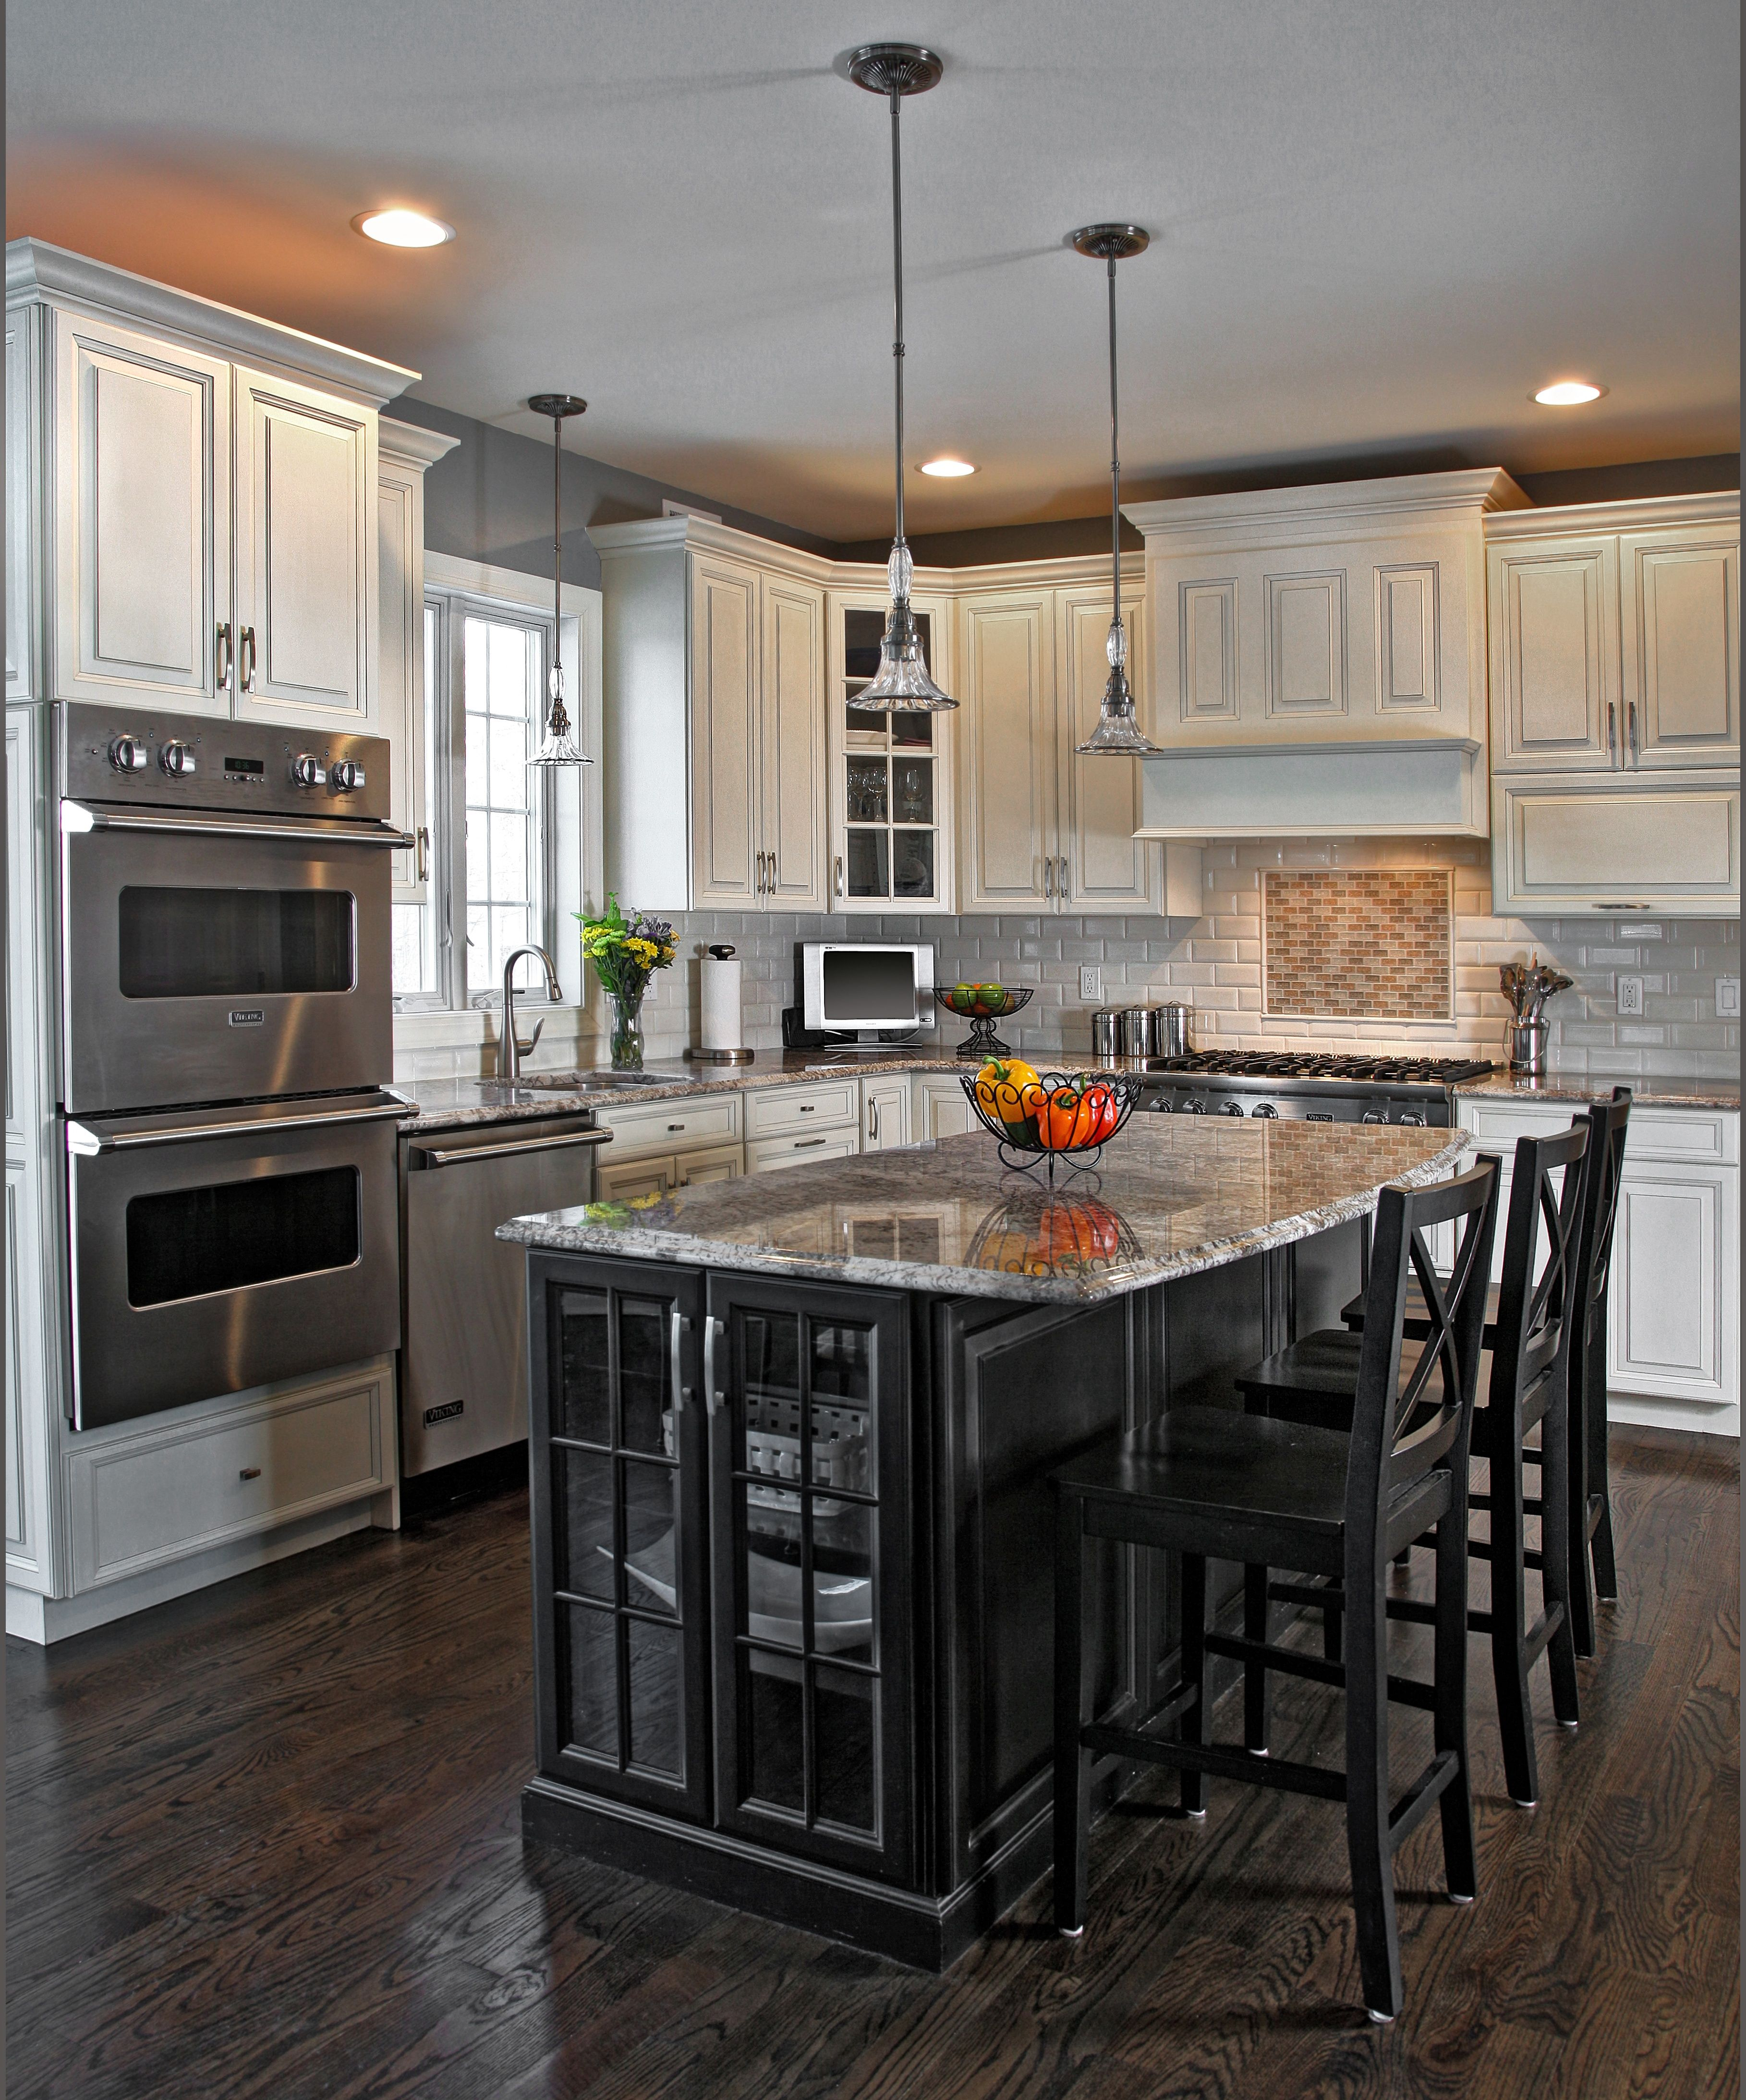 Galley Kitchen Ideas That Work For Rooms Of All Sizes: How To Make A Small Kitchen Look Good With Black Cabinets